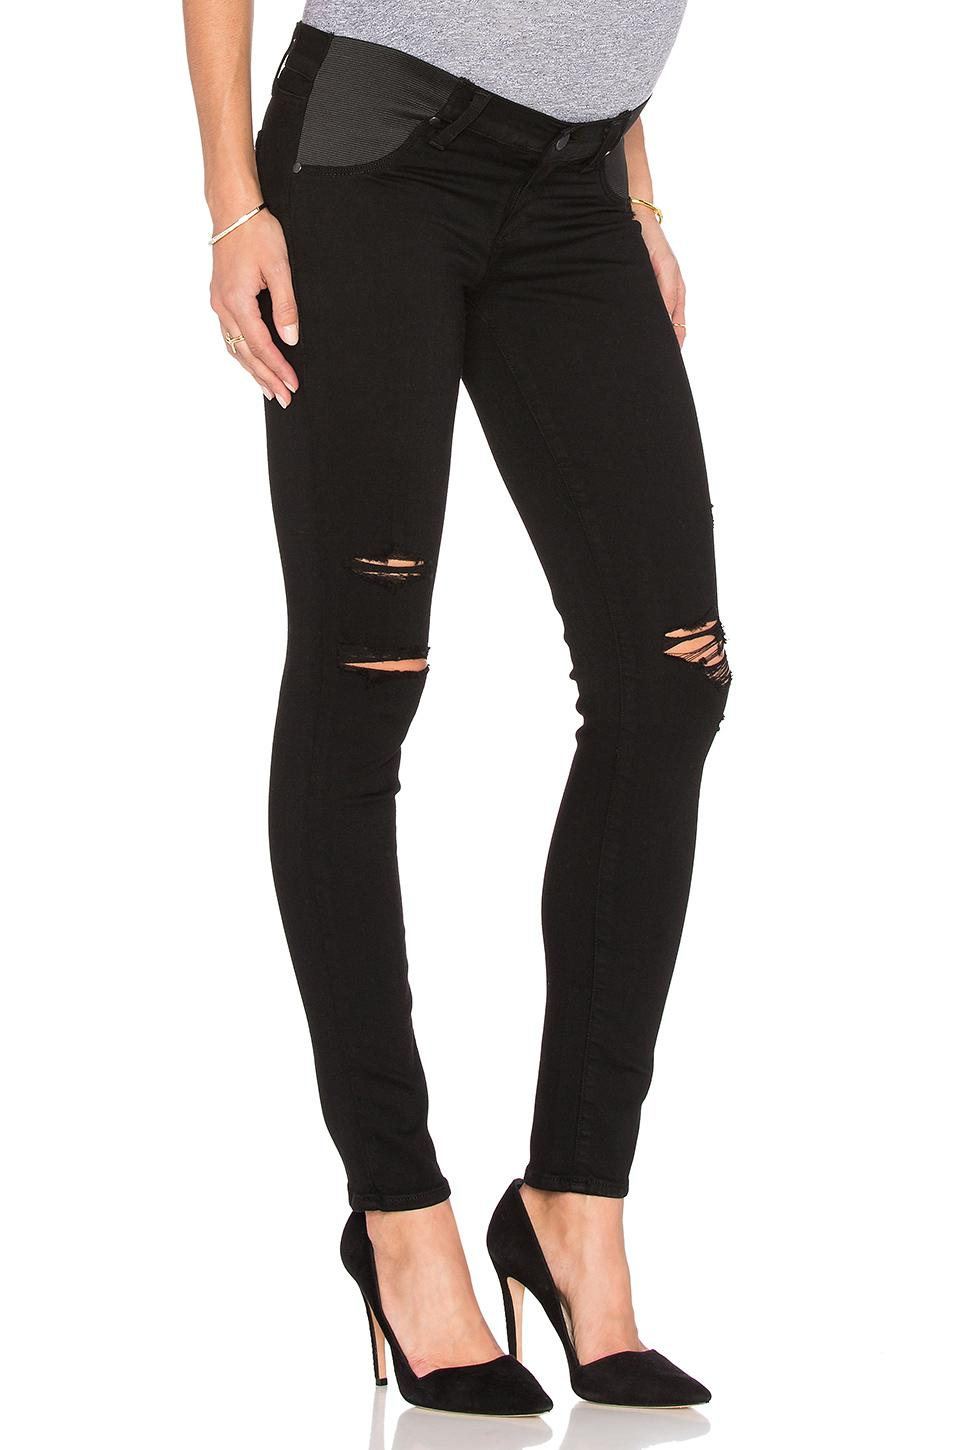 a21b633332d4a Paige Denim Verdugo Skinny Maternity Jeans In Black Shadow Destructed